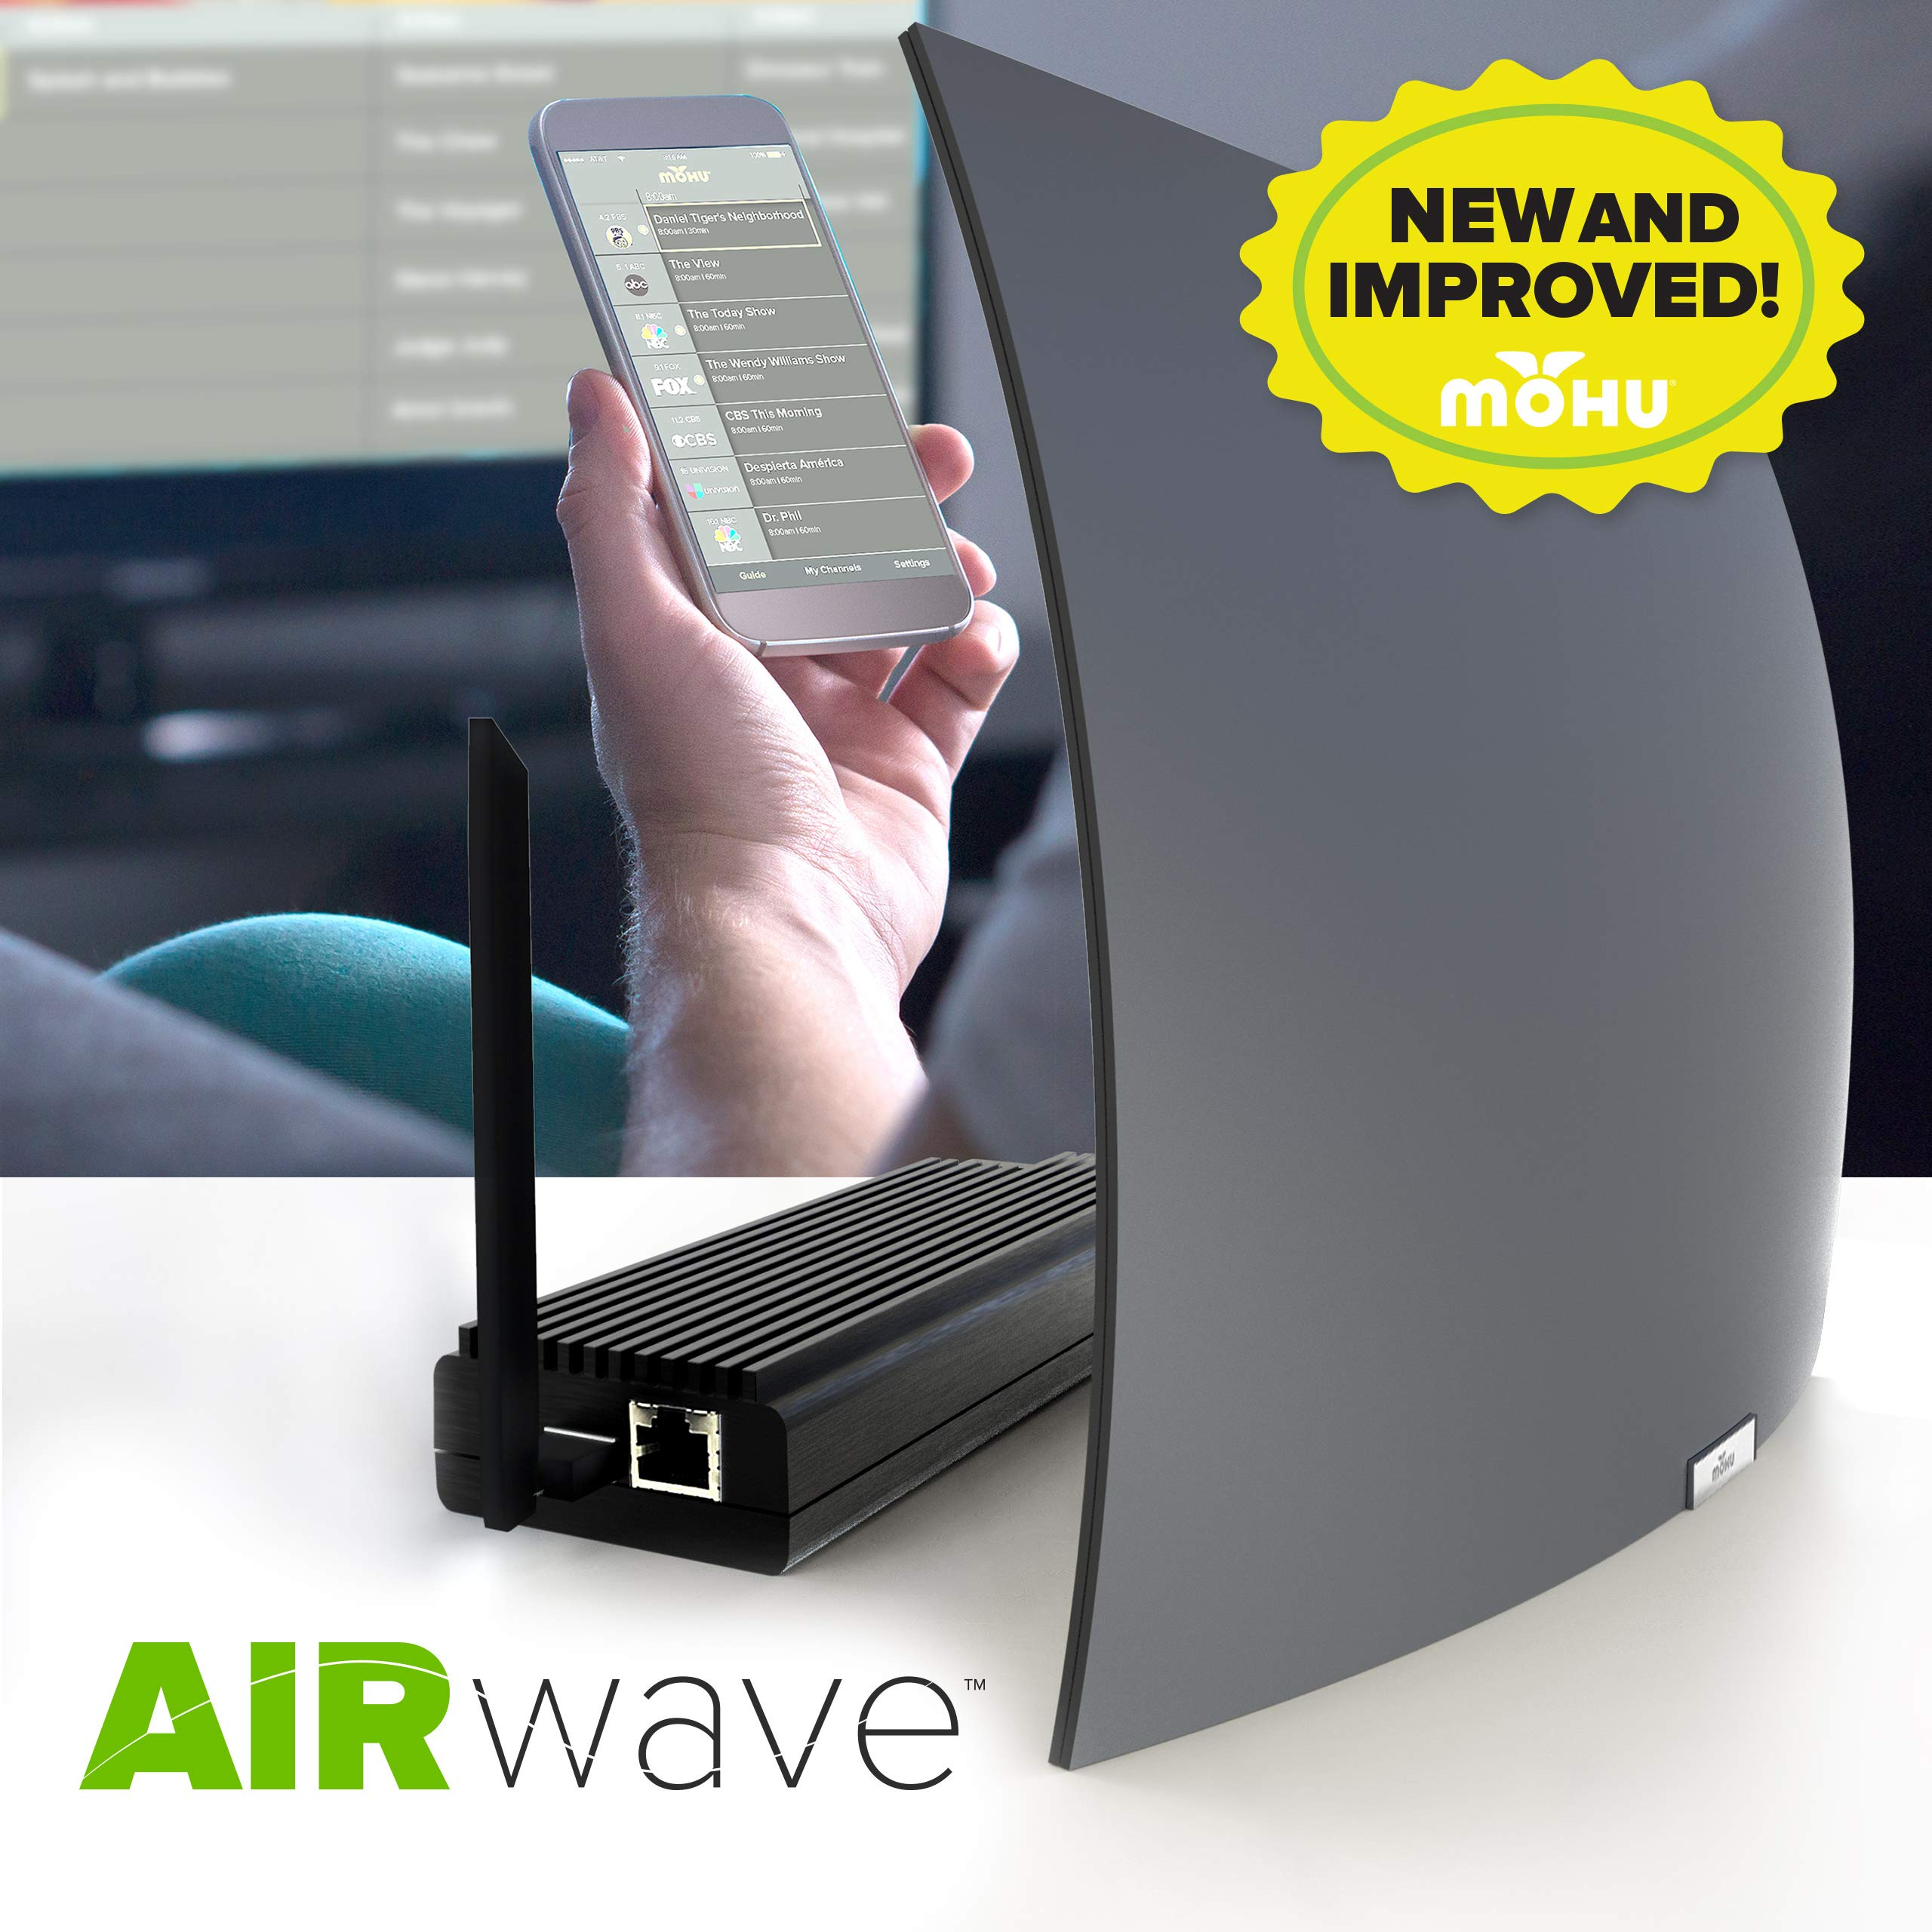 Mohu AirWave 30 Mile Antenna and Tuner with Free OTA Guide App- 2019, New and Improved by Mohu